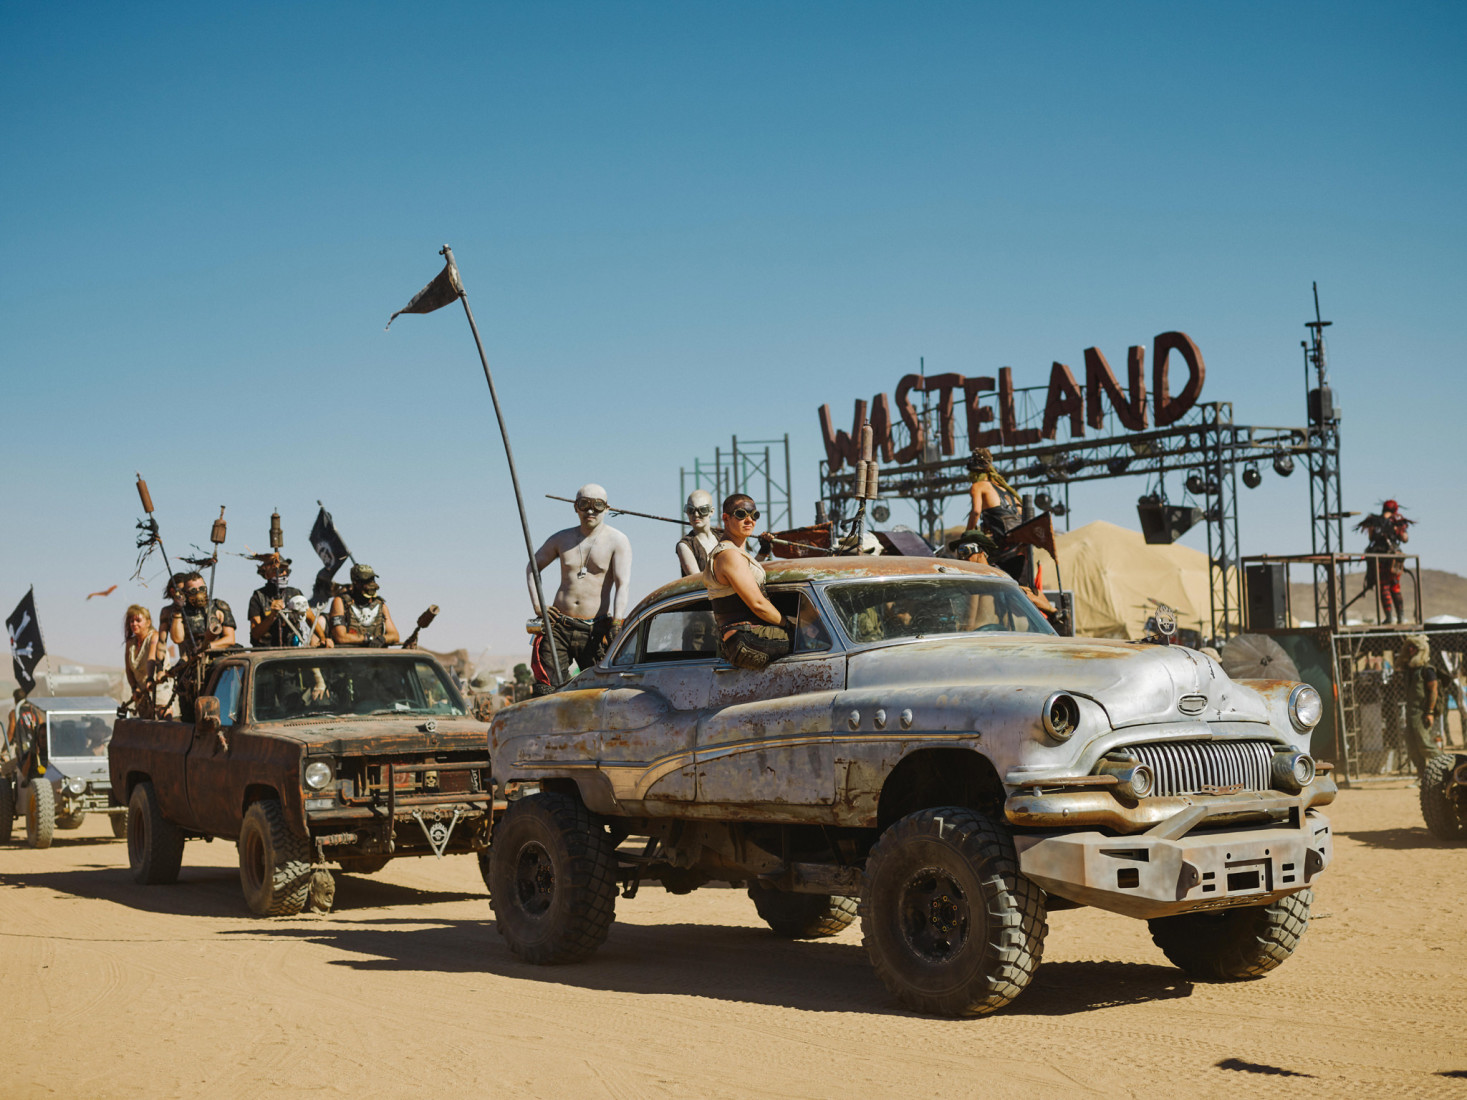 Procession of cars in front of the main sign at Wasteland Weekend festival